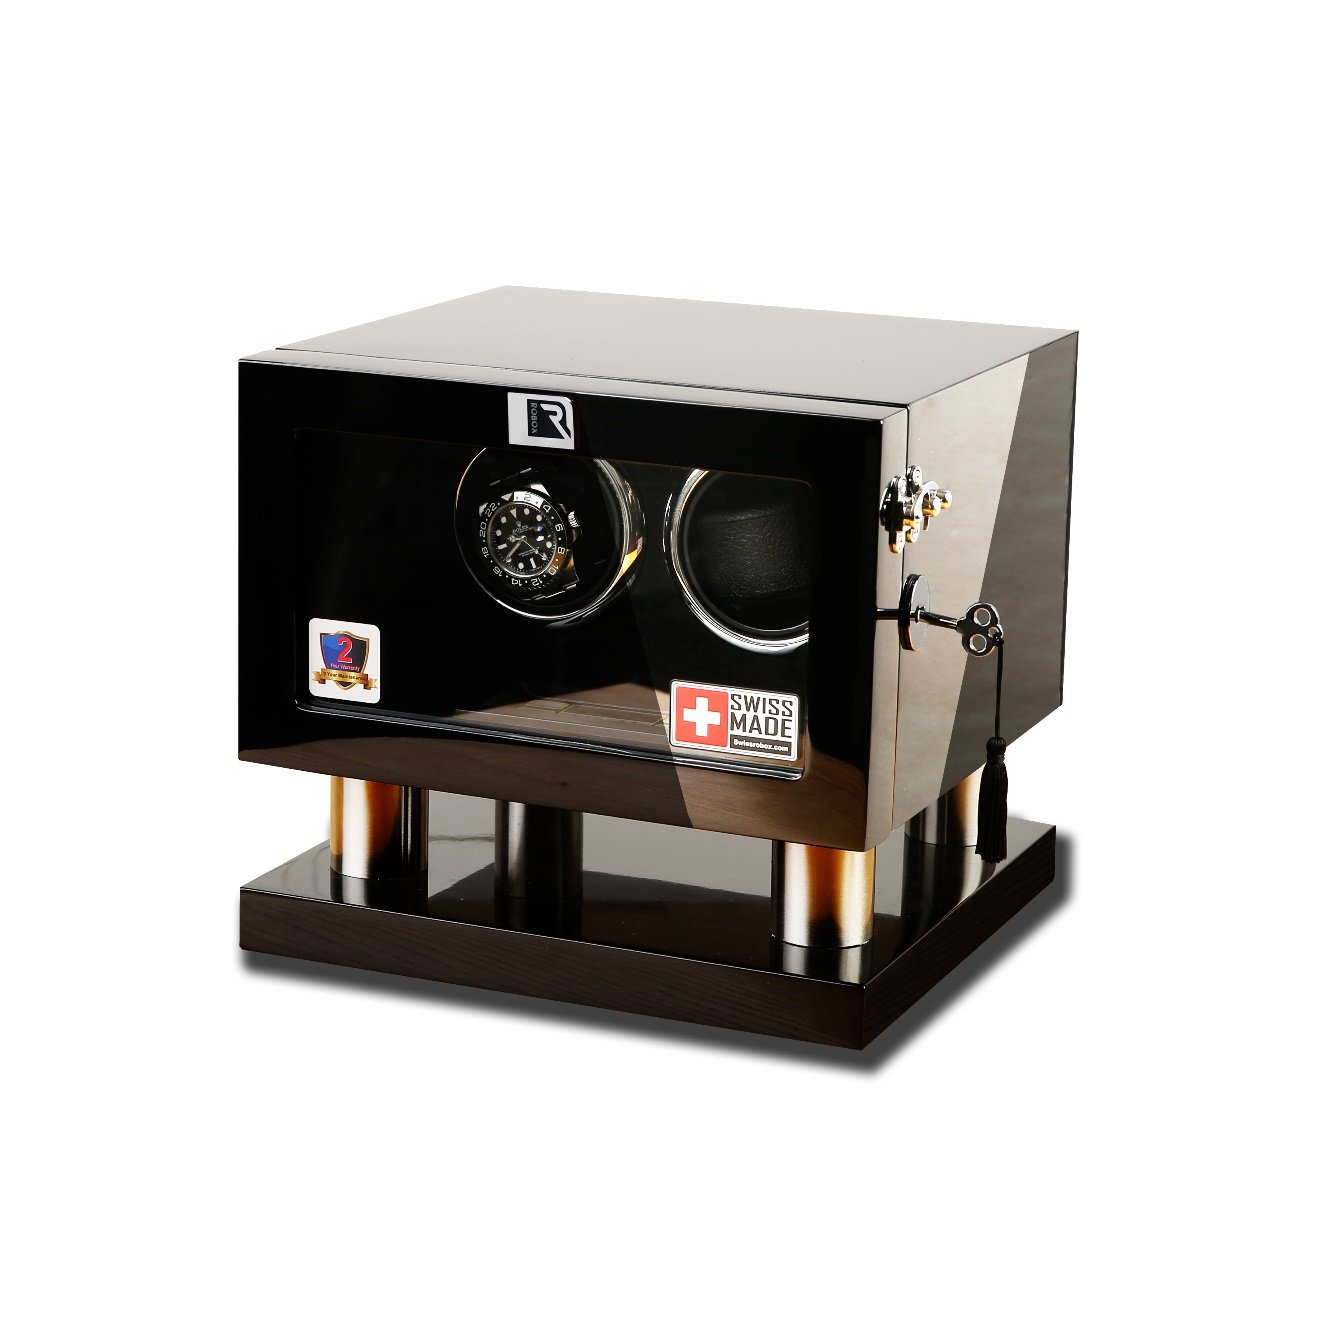 The ROBOX WATCH WINDER 2 CASE SRW6002GW - The perfect for your watch